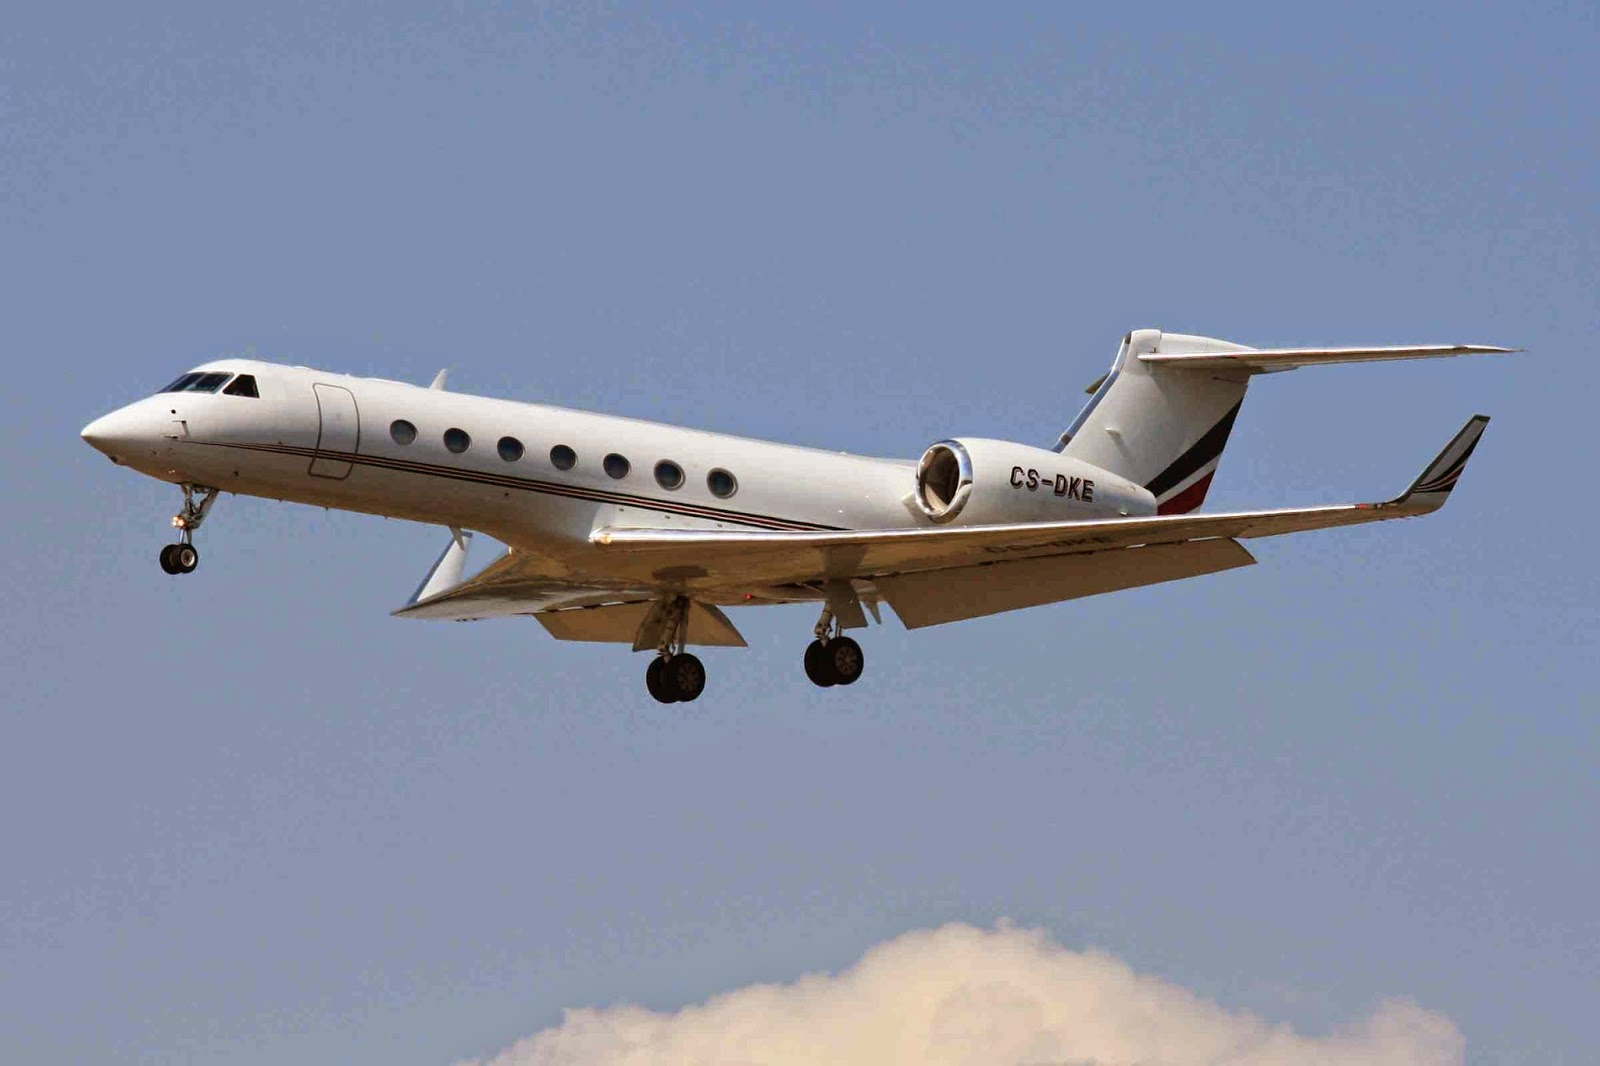 How Much Fuel Does A G550 Burn